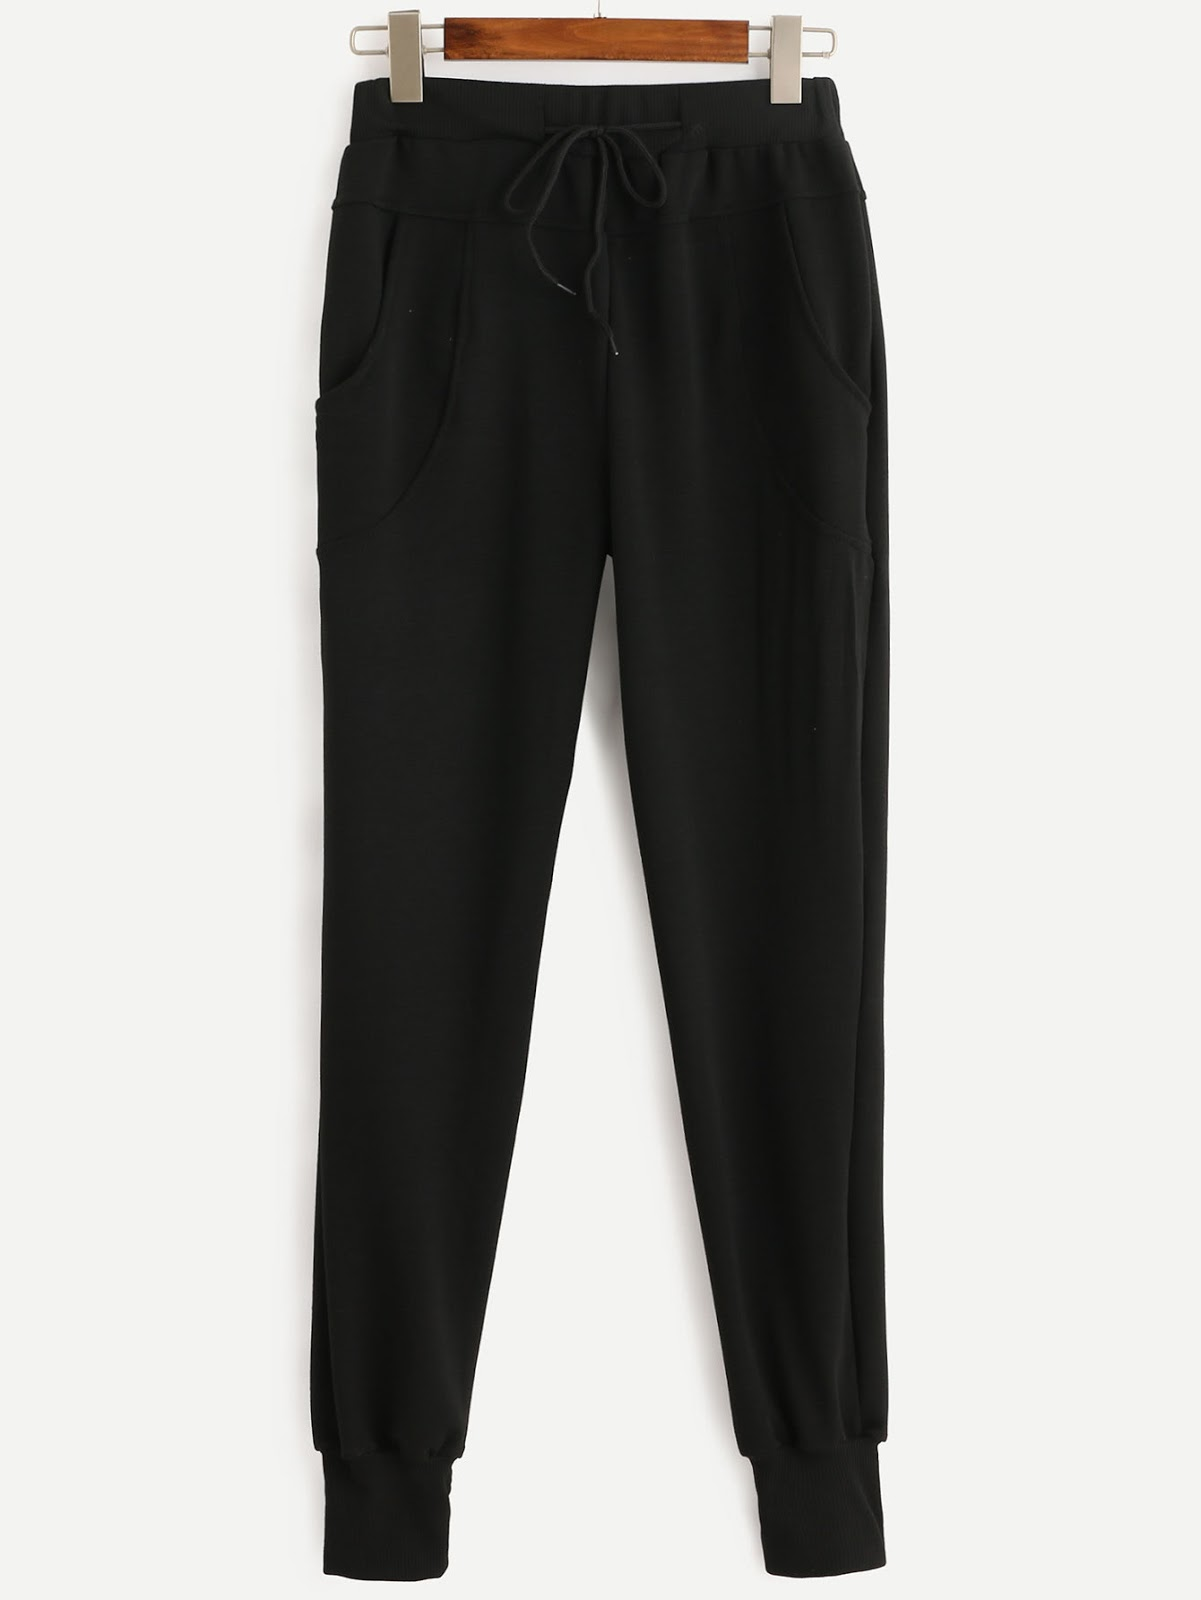 The Trendiest Pants You Need To Get For Fall 2014